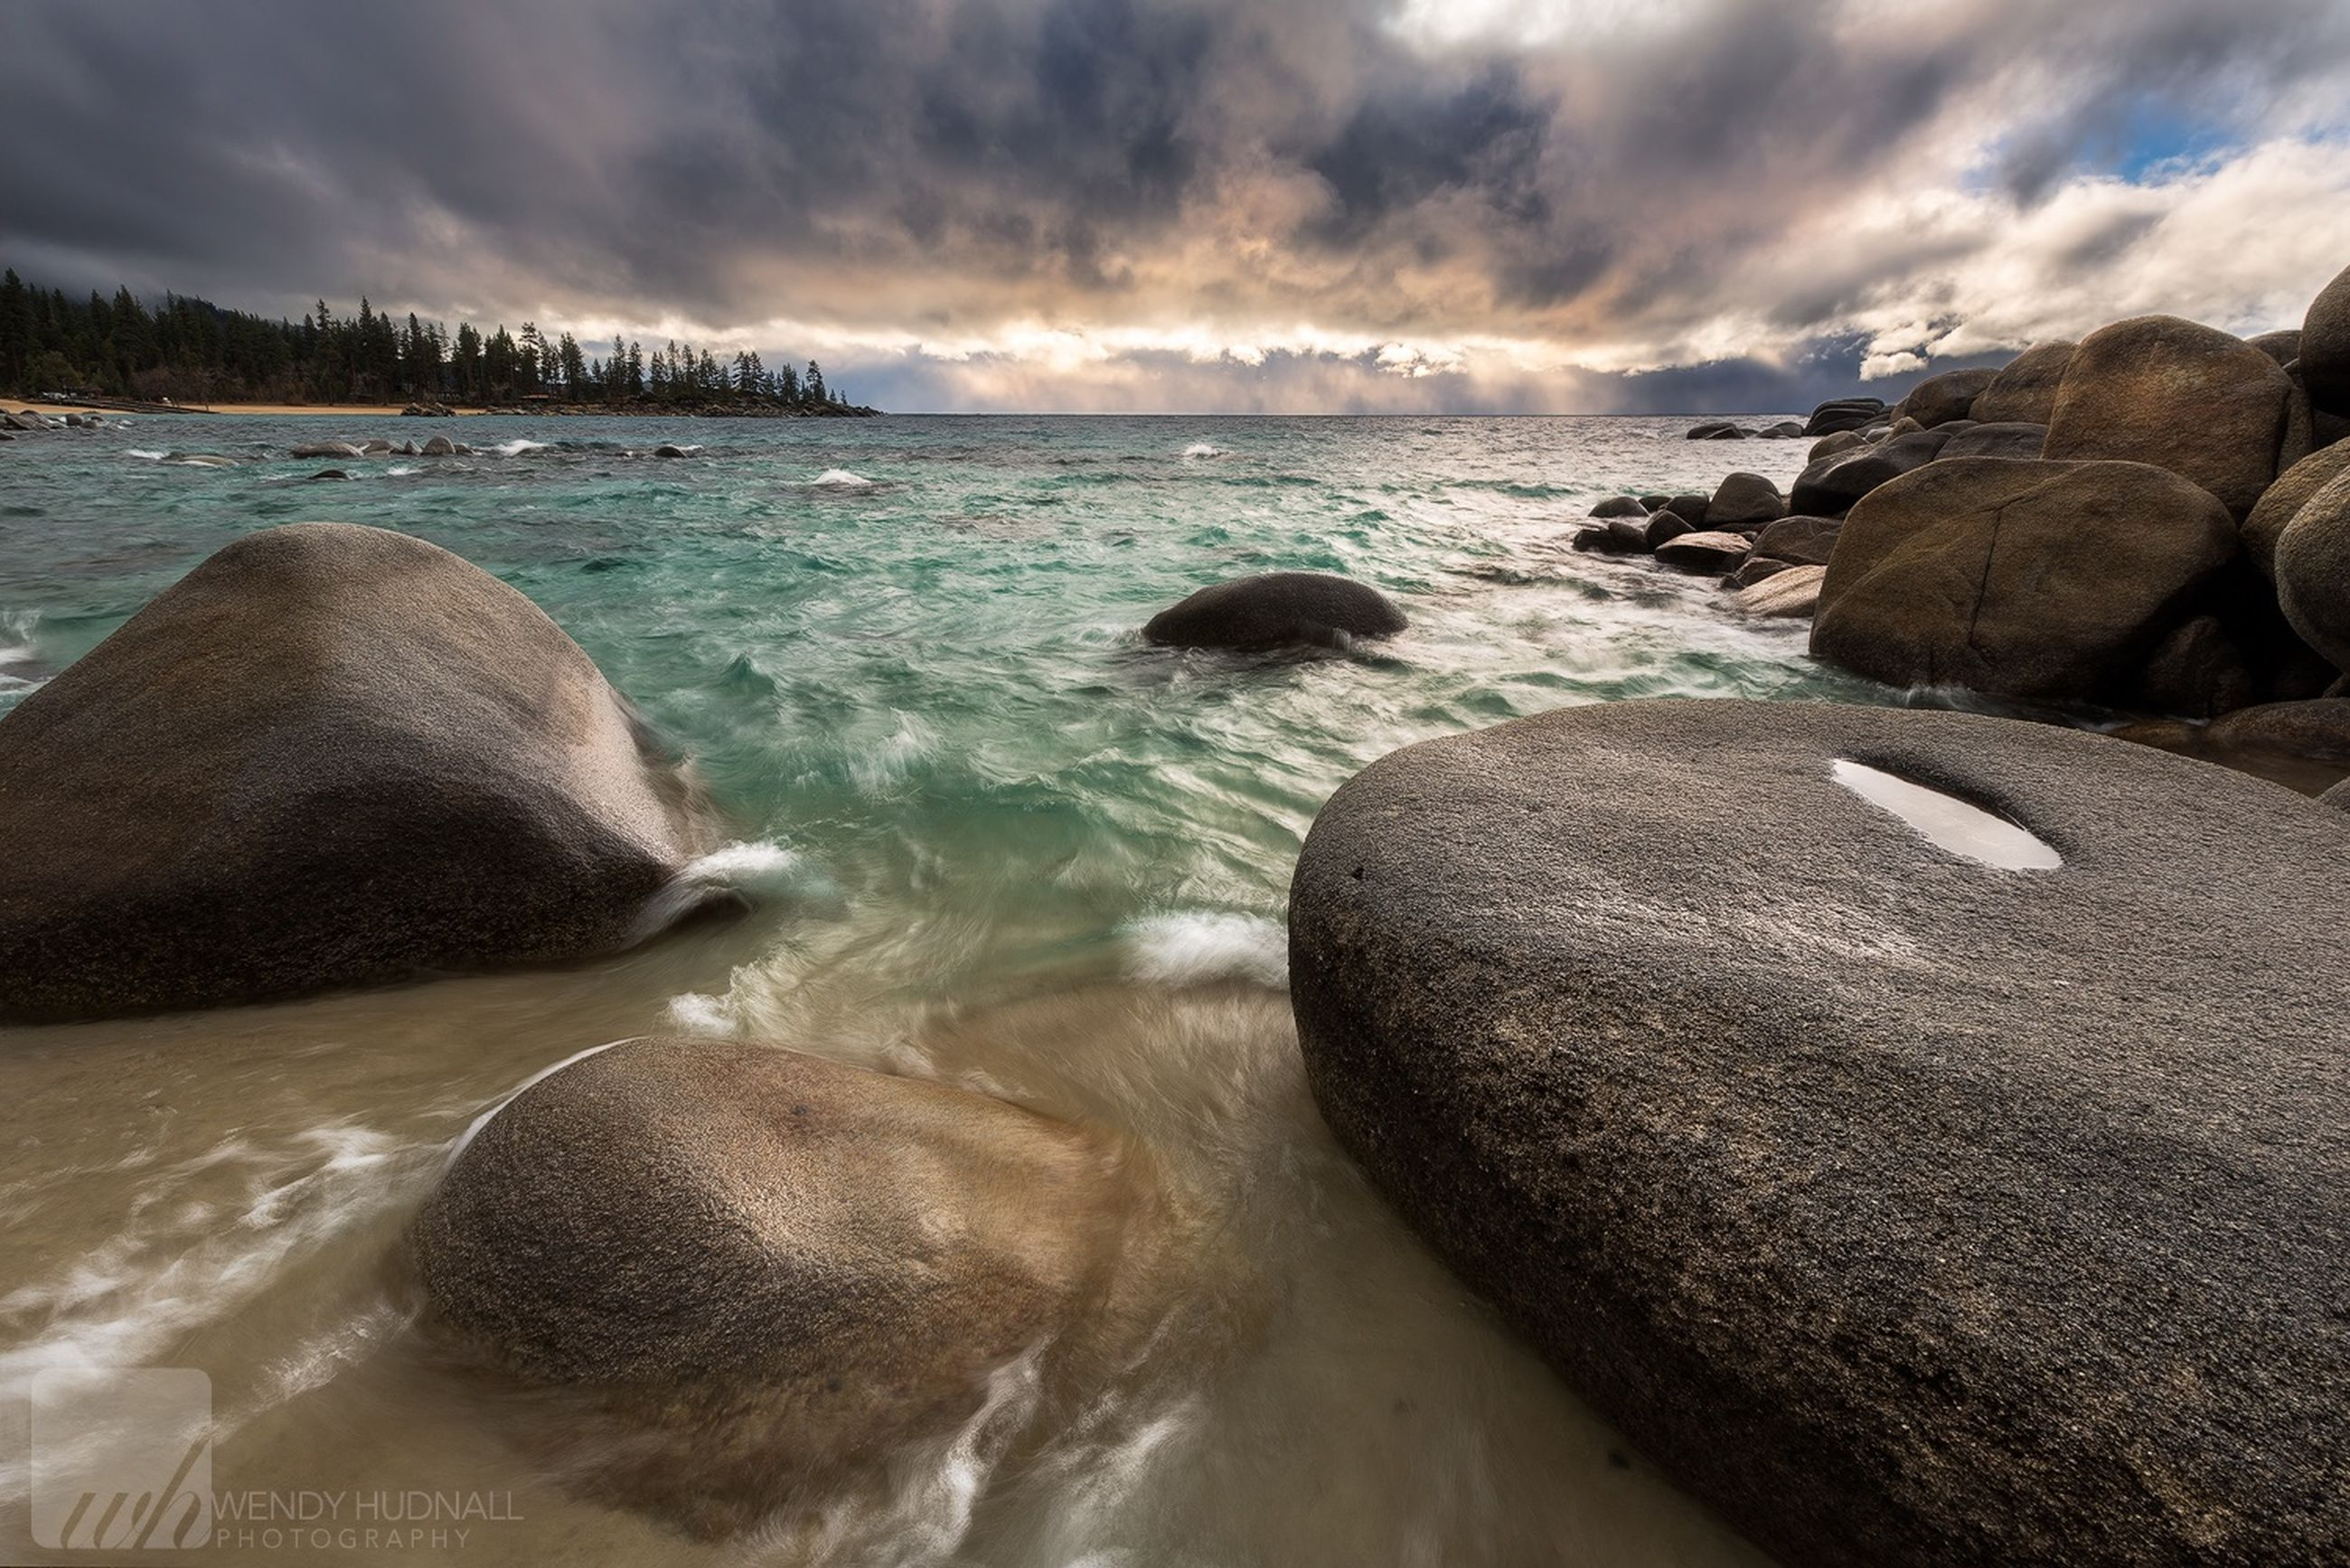 sea, water, sky, beach, tranquil scene, scenics, beauty in nature, cloud - sky, tranquility, horizon over water, shore, rock - object, nature, cloudy, cloud, idyllic, rock formation, sunset, remote, sand